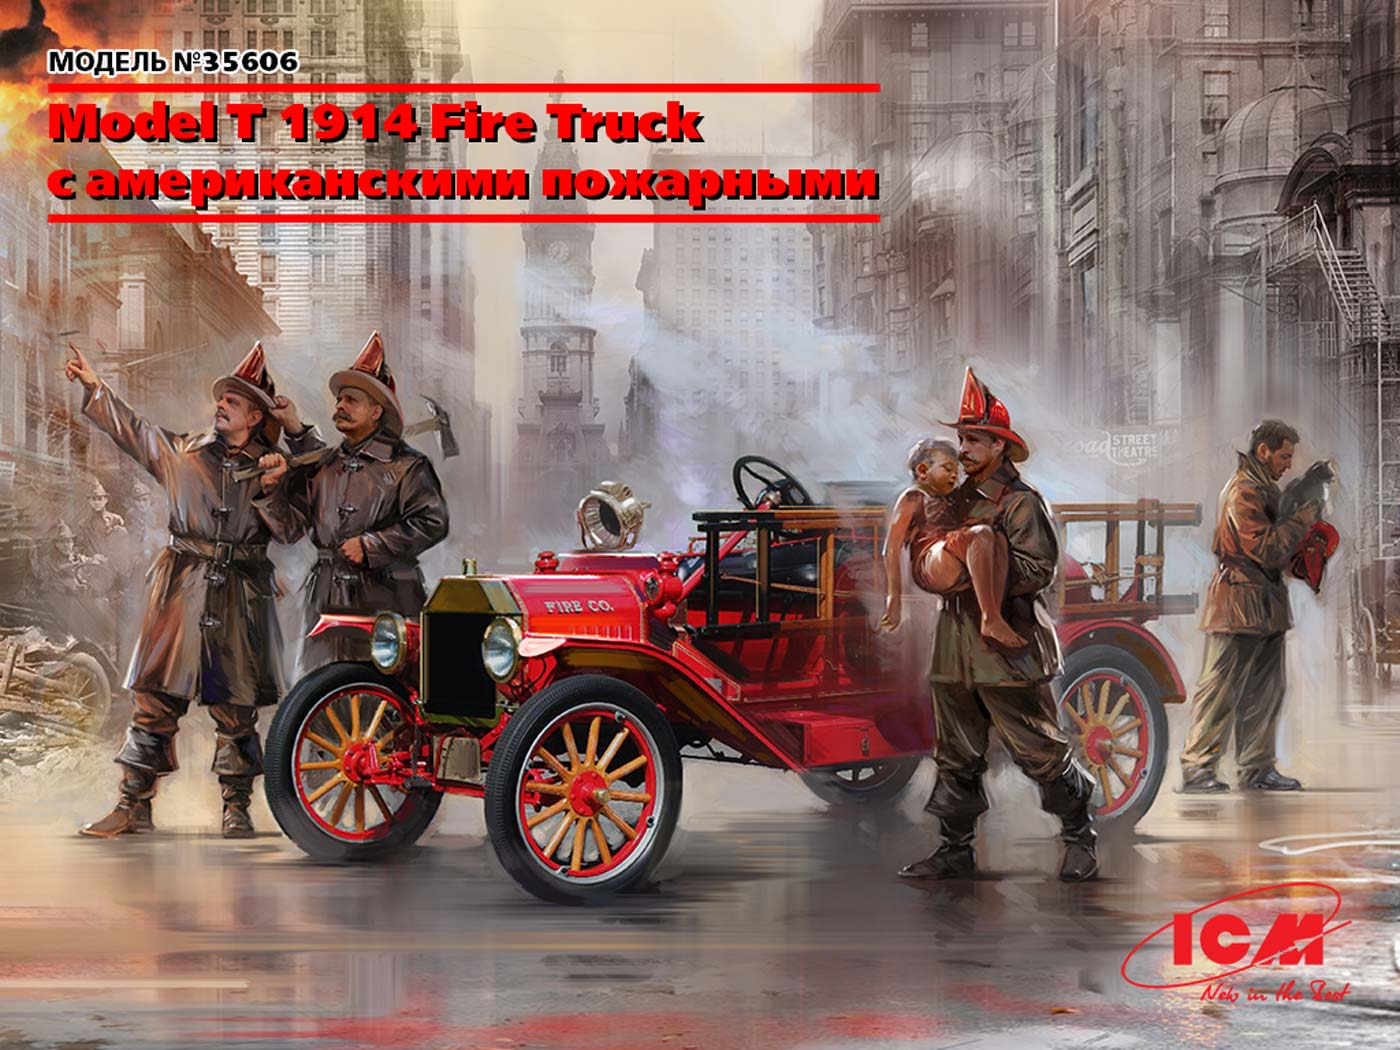 35606_Model-T-1914-Fire-Truck-with-Crew_rus_